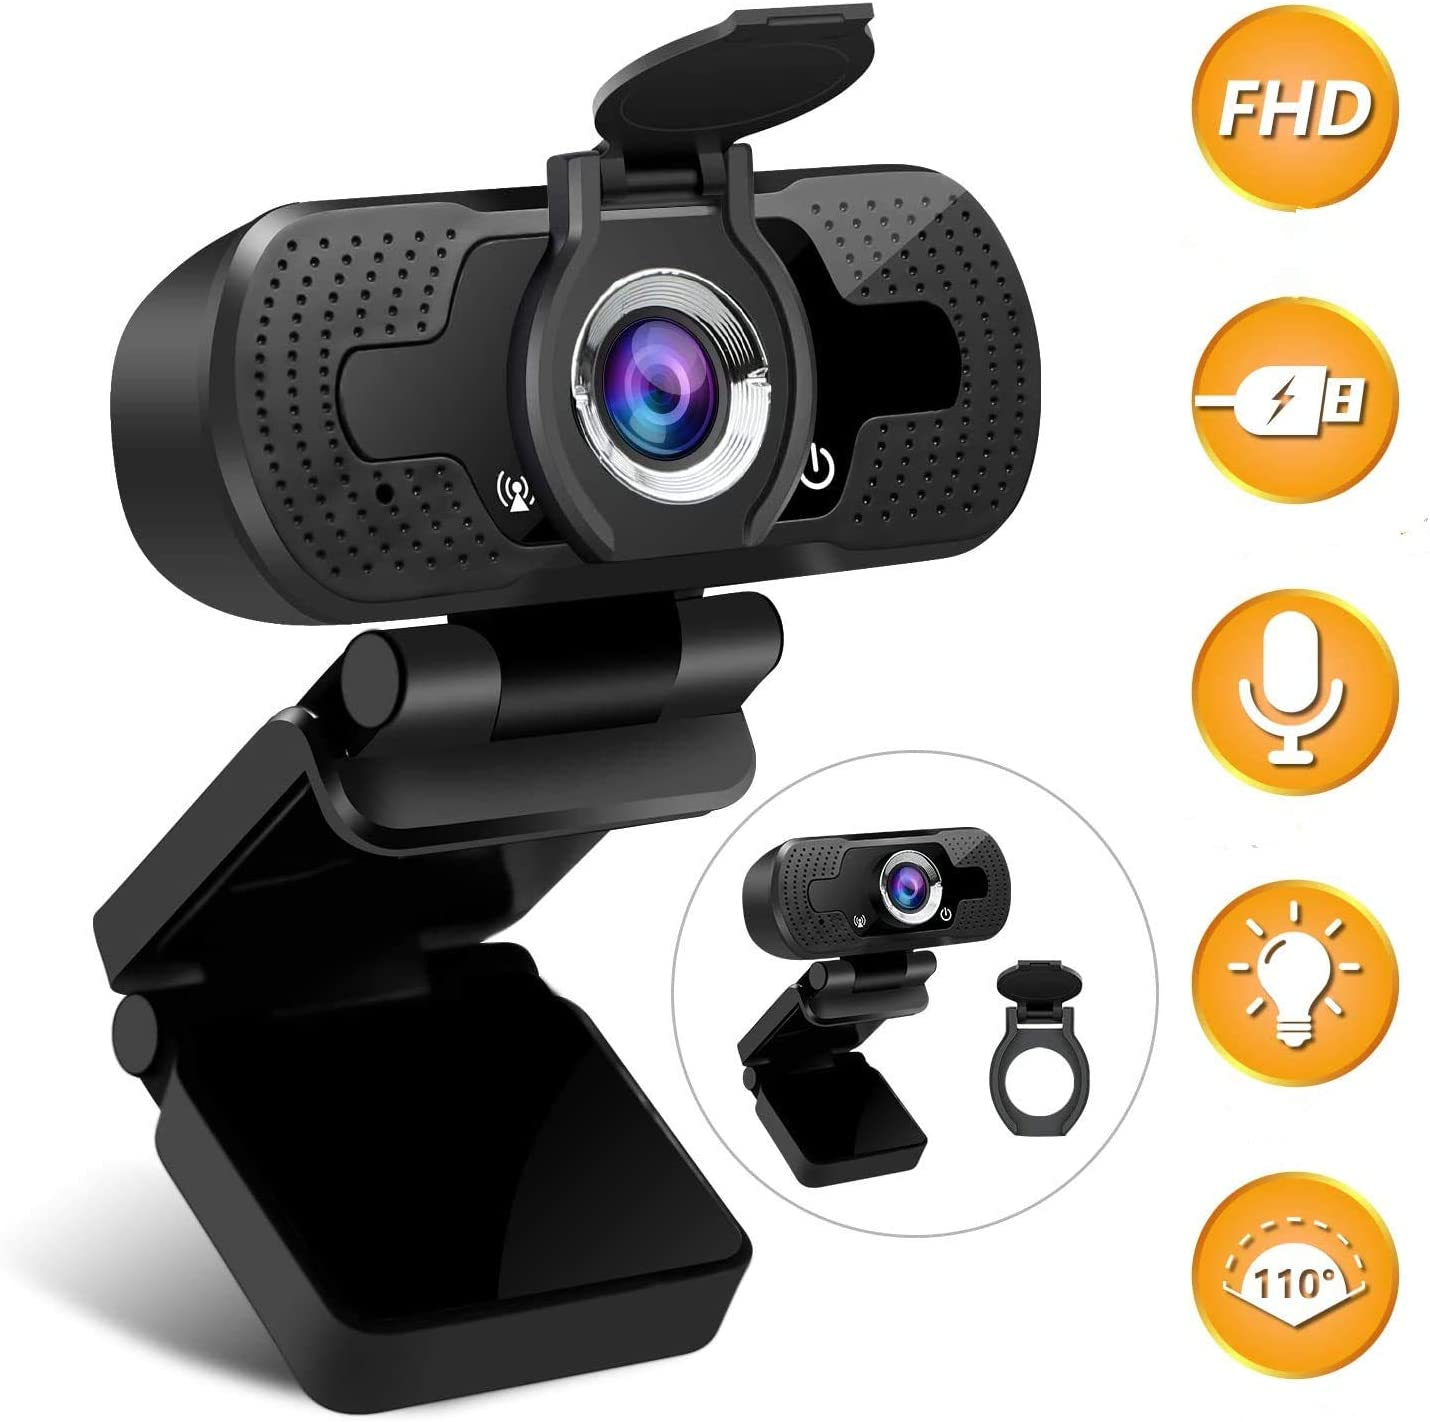 HD Webcam 1080P Computer Web Camera, PC Webcam with Microphone Drive-Free, Streaming Webcam for Desktop, Laptop, Conferencing, USB Webcam with Privacy Cover & Tripod 110° Wide View Angle